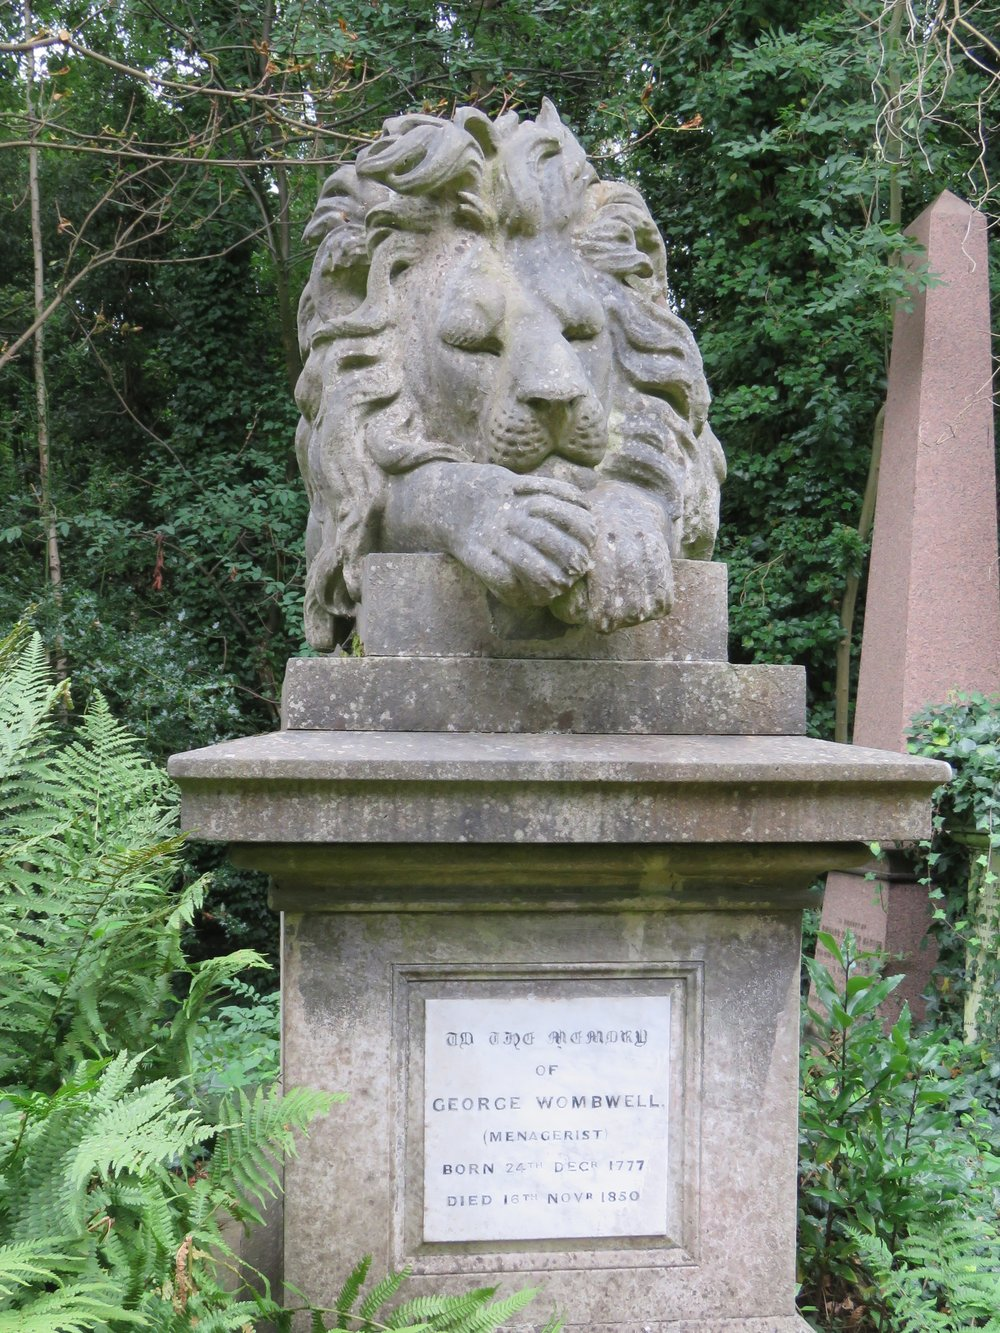 This man owned many traveling menageries - perhaps the lion looks content because he ate his master???